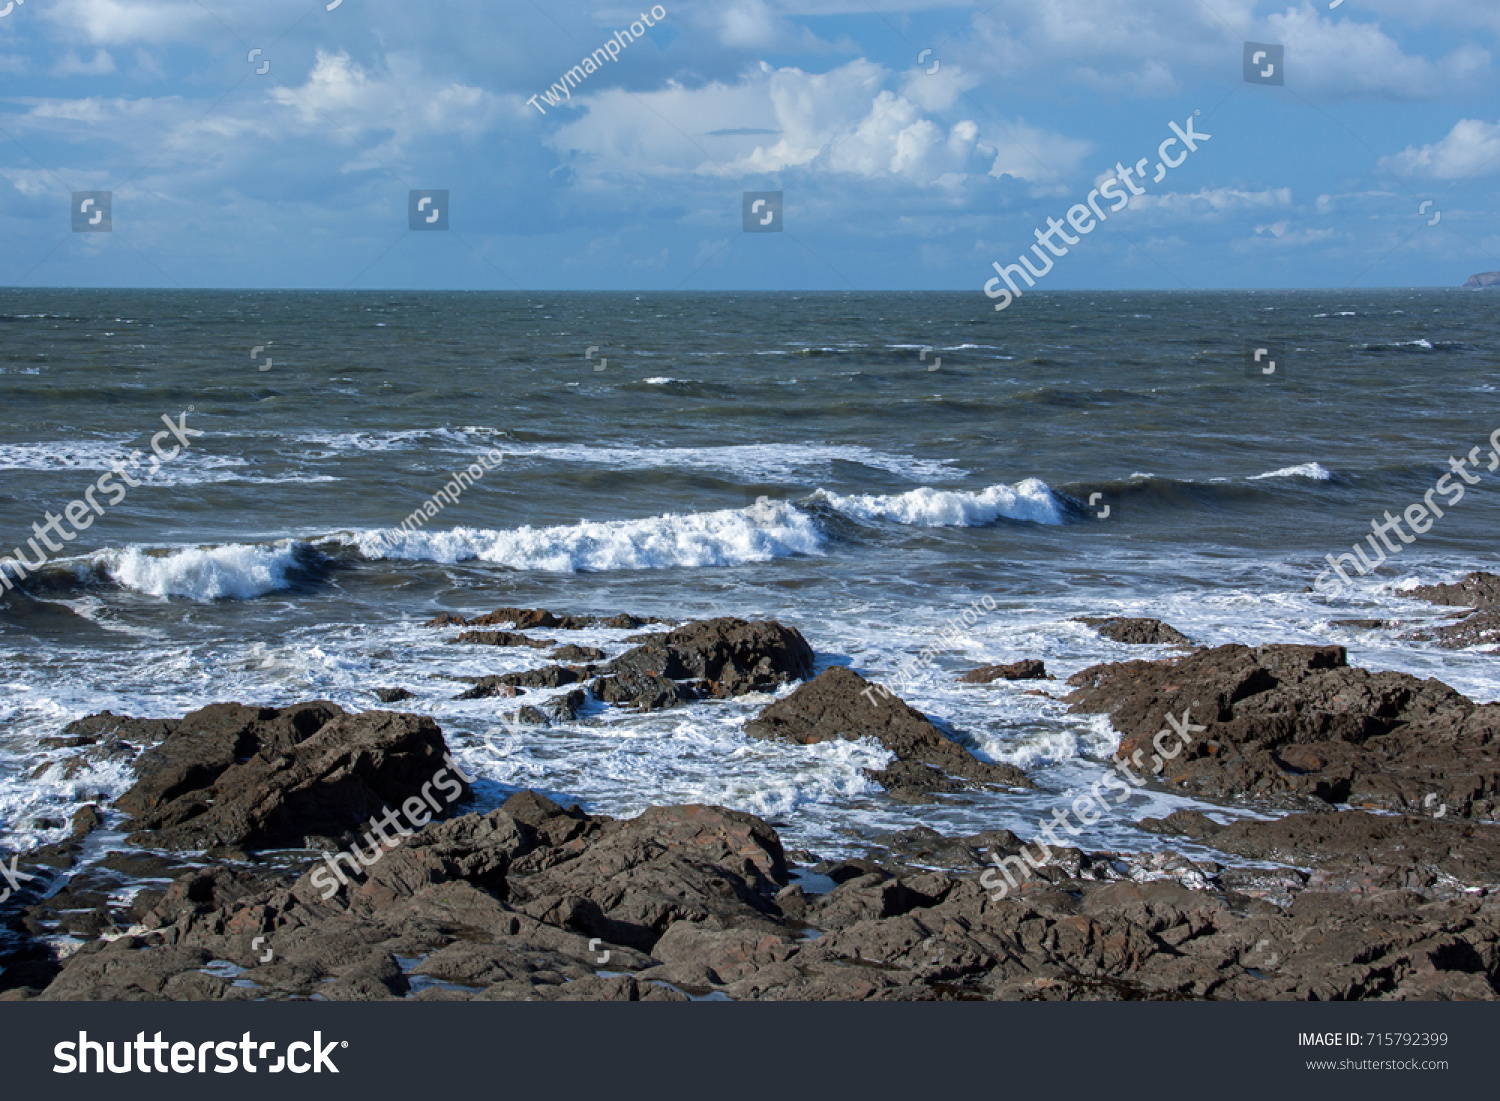 Waves crashing on the shoreline rocks #715792399